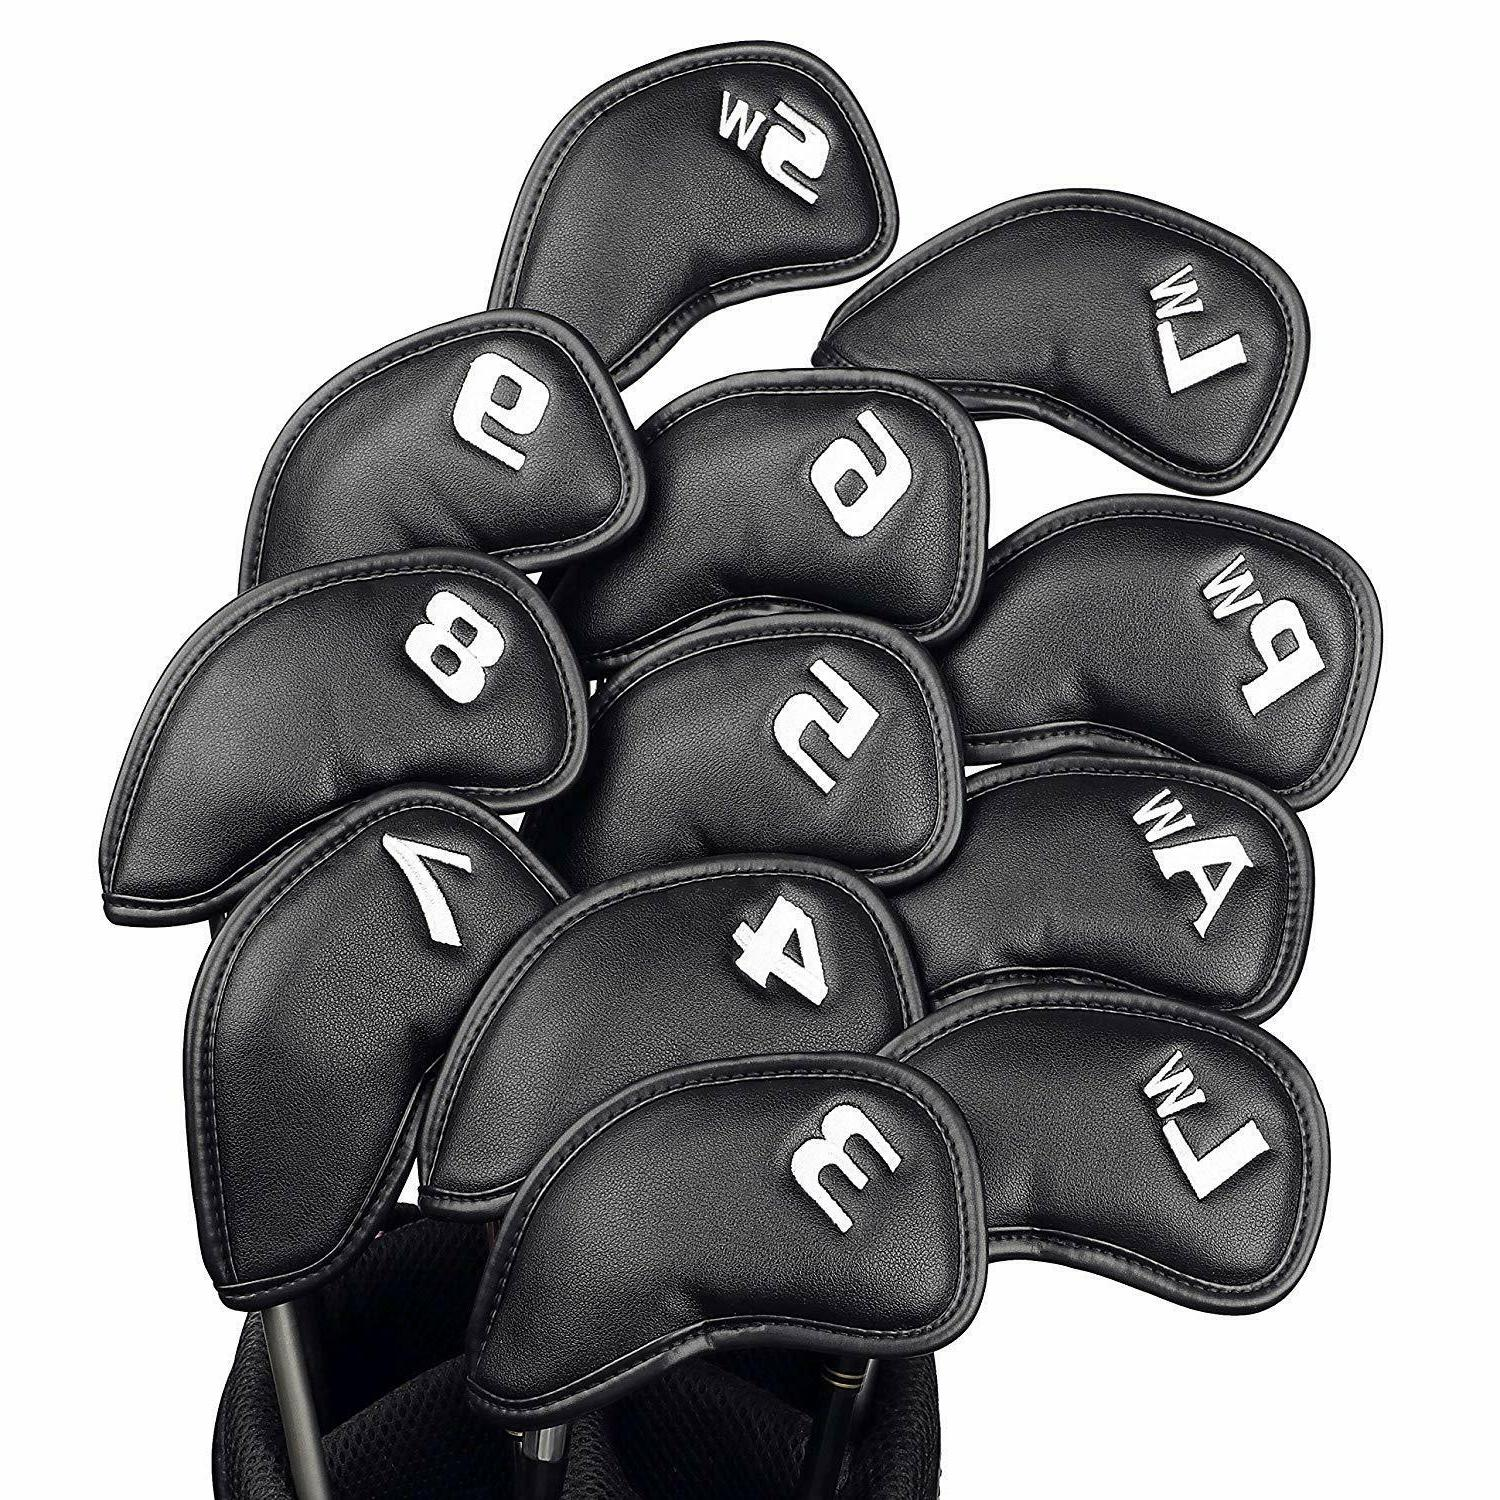 Champkey Monster Golf Iron Head Cover Pack of 12pcs, More Th